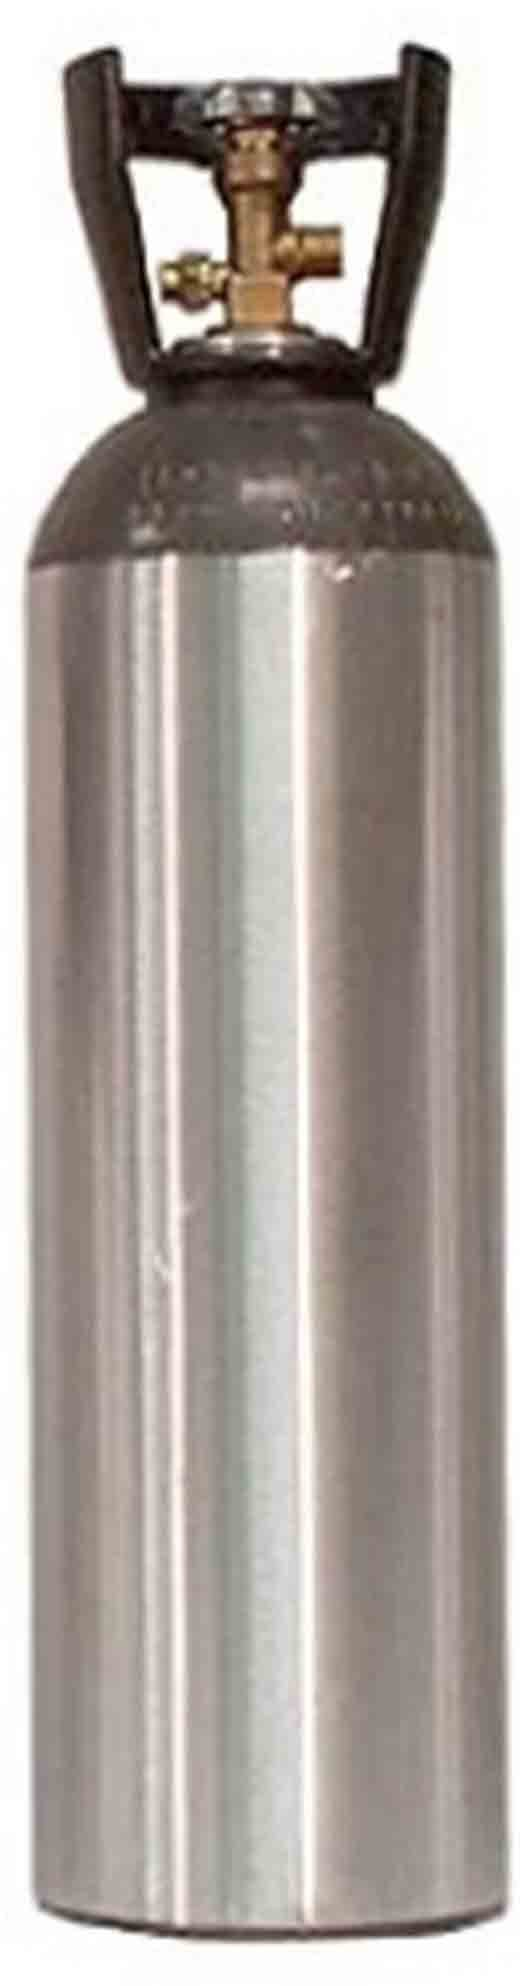 15 Pound CO2 Aluminum Cylinder Tank New - Sherwood CGA 320 Valve, Soda System Home Brew Making (Carry Handle) by Catalina